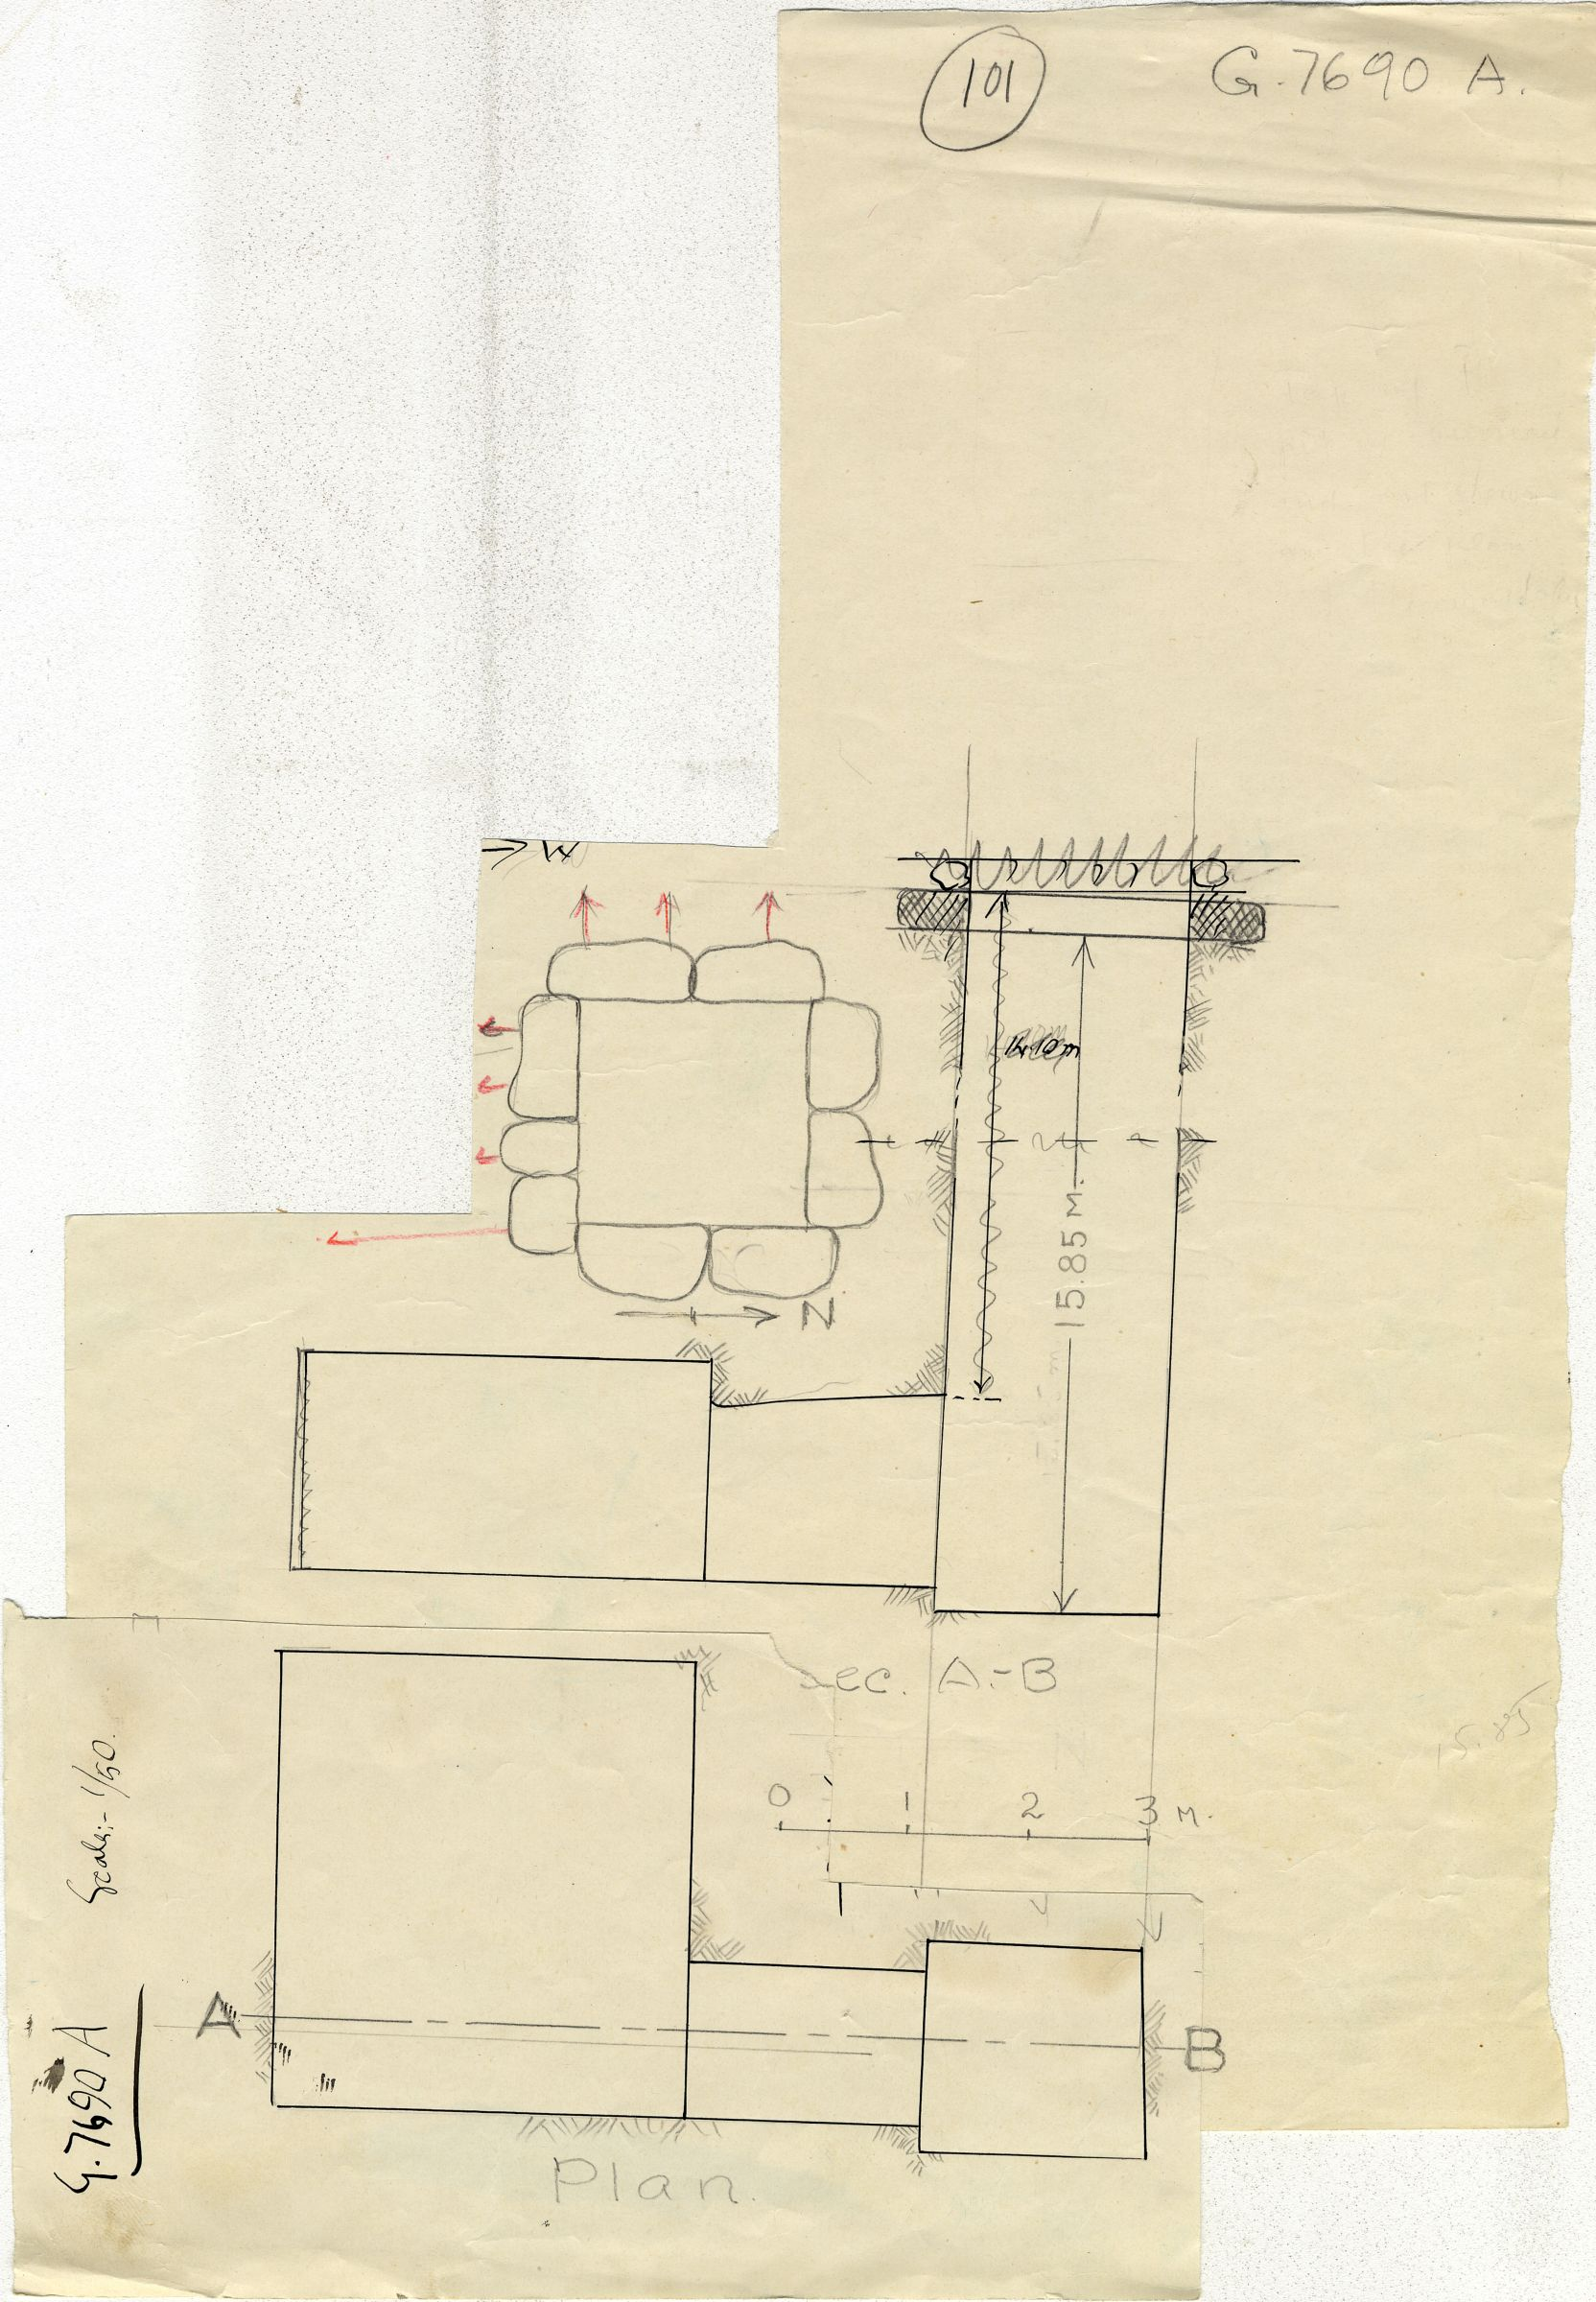 Maps and plans: G 7690, Shaft A